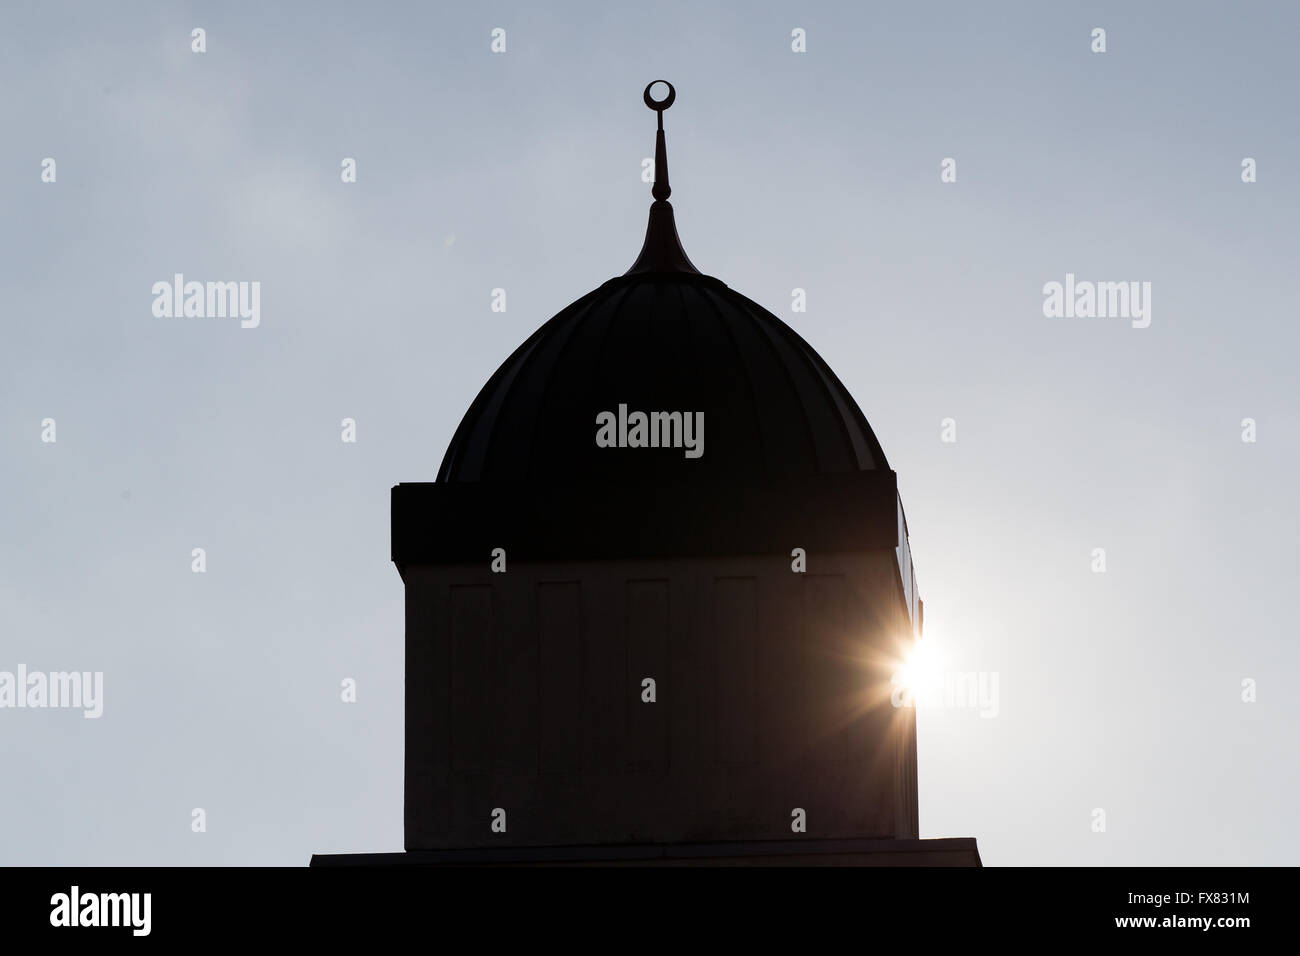 The Islamic Centre of Kingston in Kingston, Ont., on Dec. 8, 2015. - Stock Image